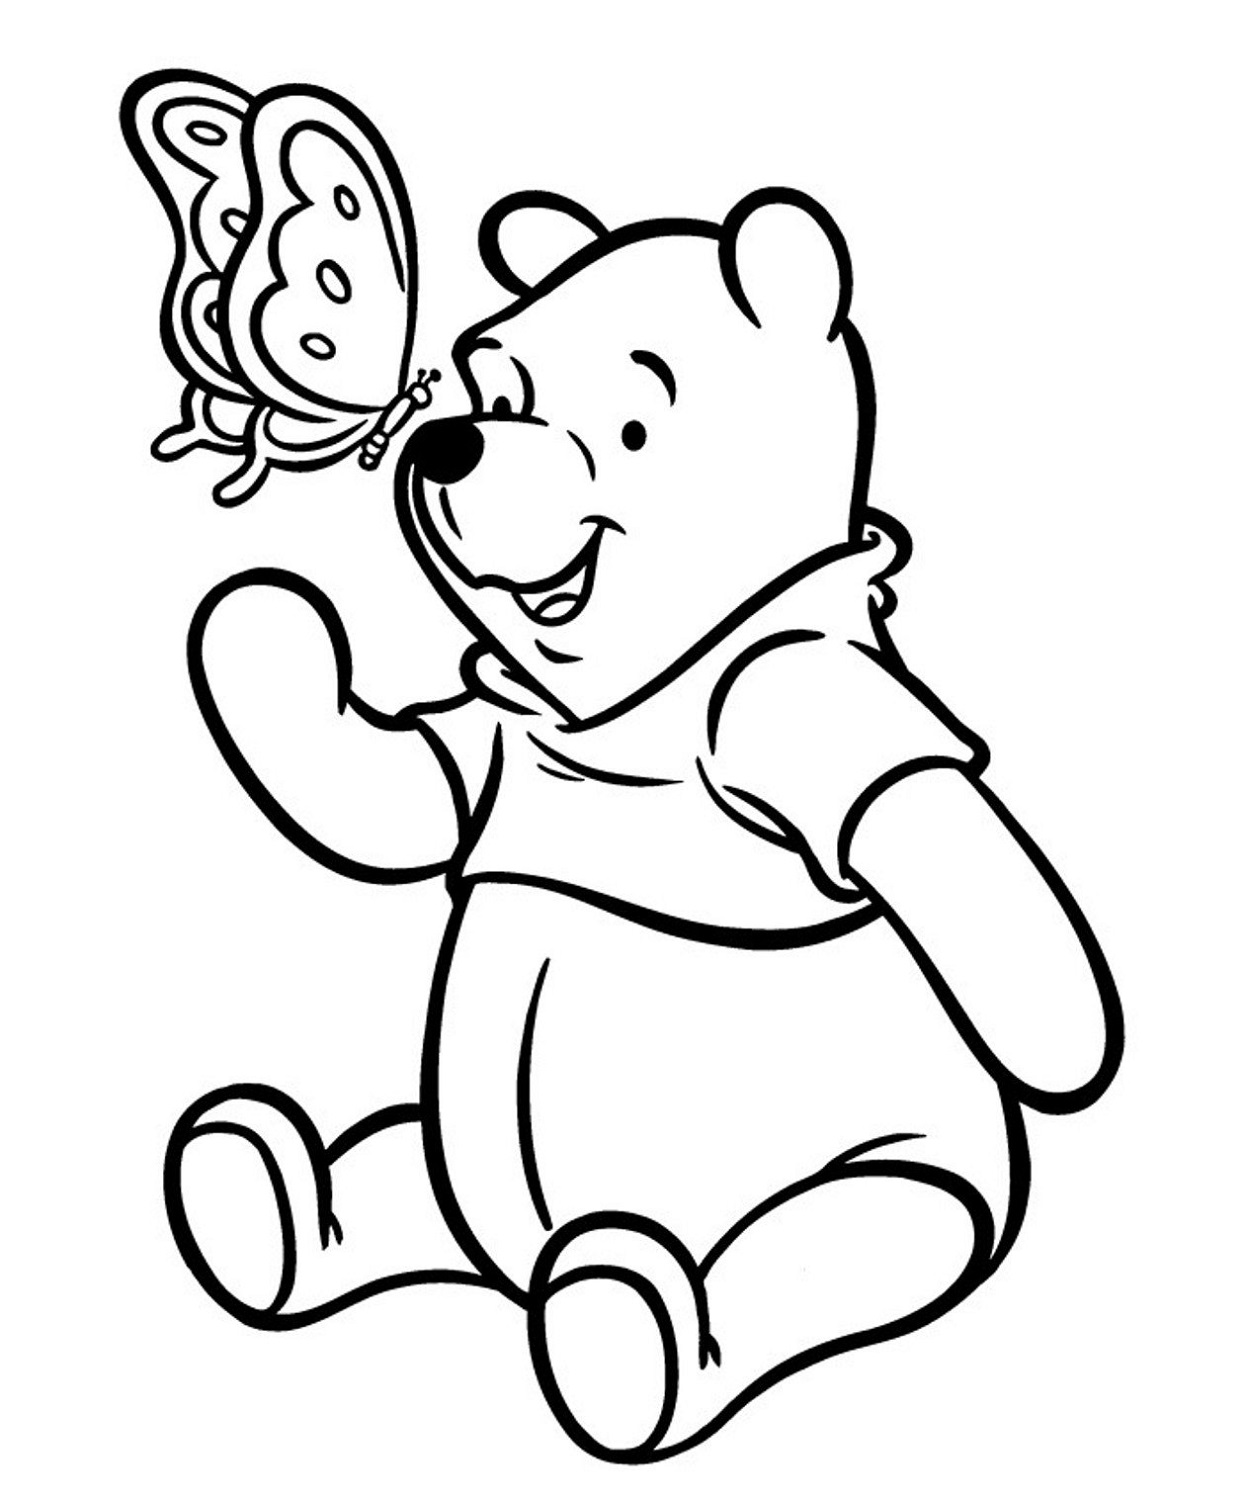 Colour Cartoon Pooh